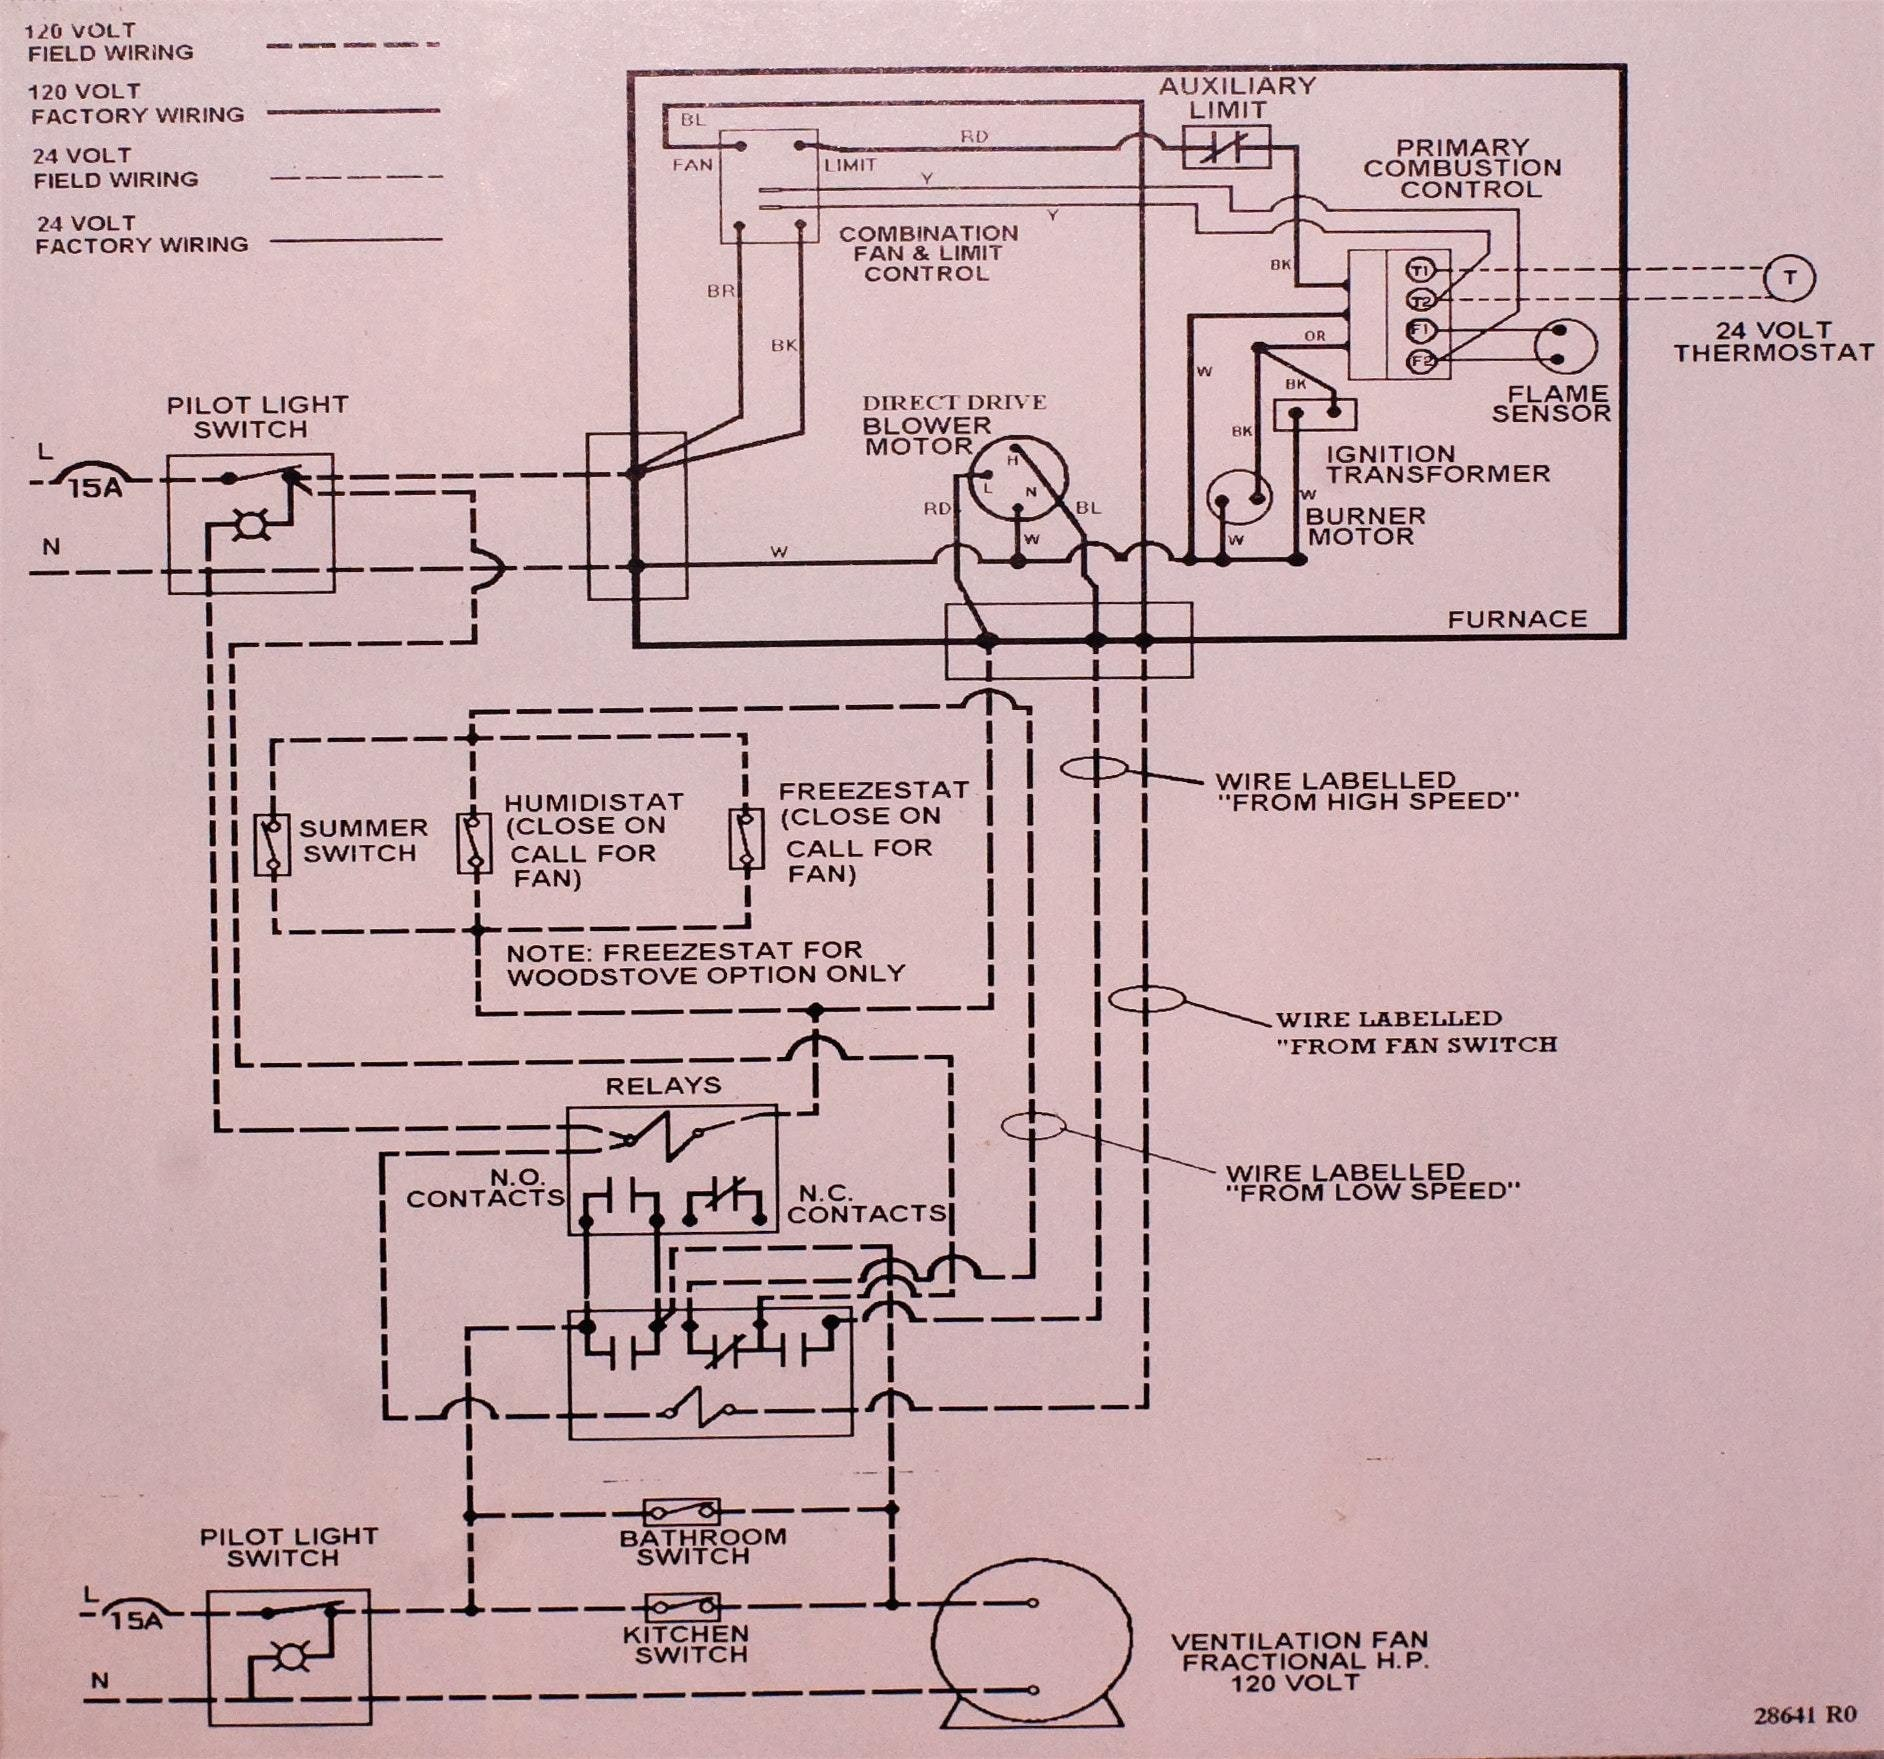 [DIAGRAM_1CA]  CEC Coleman Evcon Electric Furnace Wiring | Wiring Library | Dgaa077bdta Evcon Wiring Diagram |  | Wiring Library